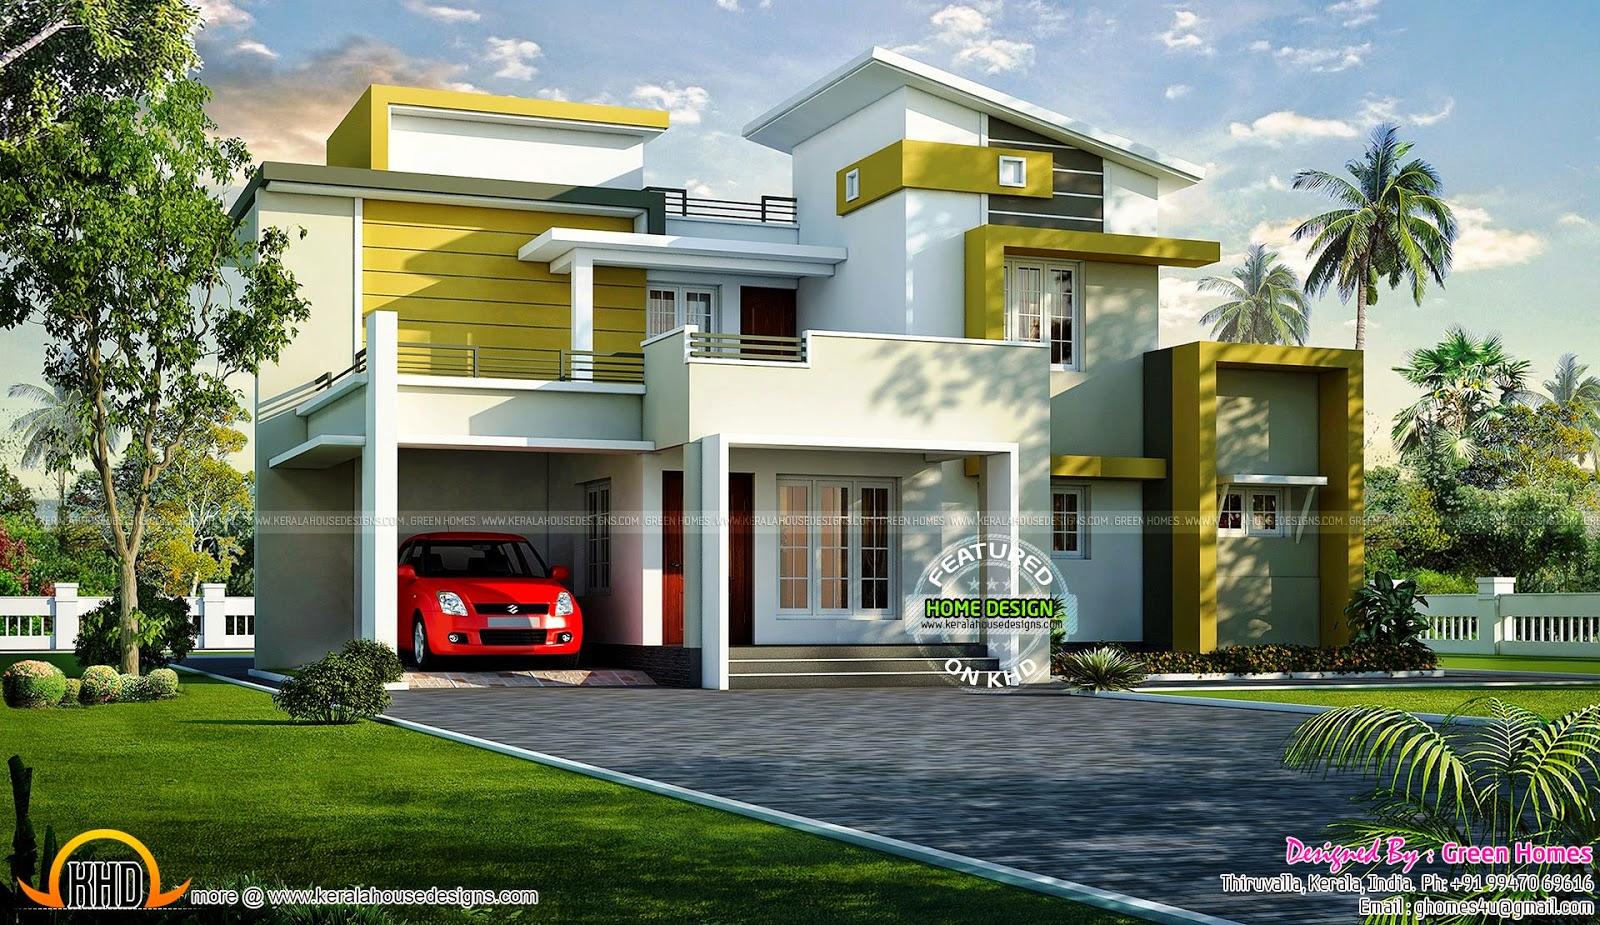 India bungalow exterior keralahousedesigns for 2 bedroom house designs in india